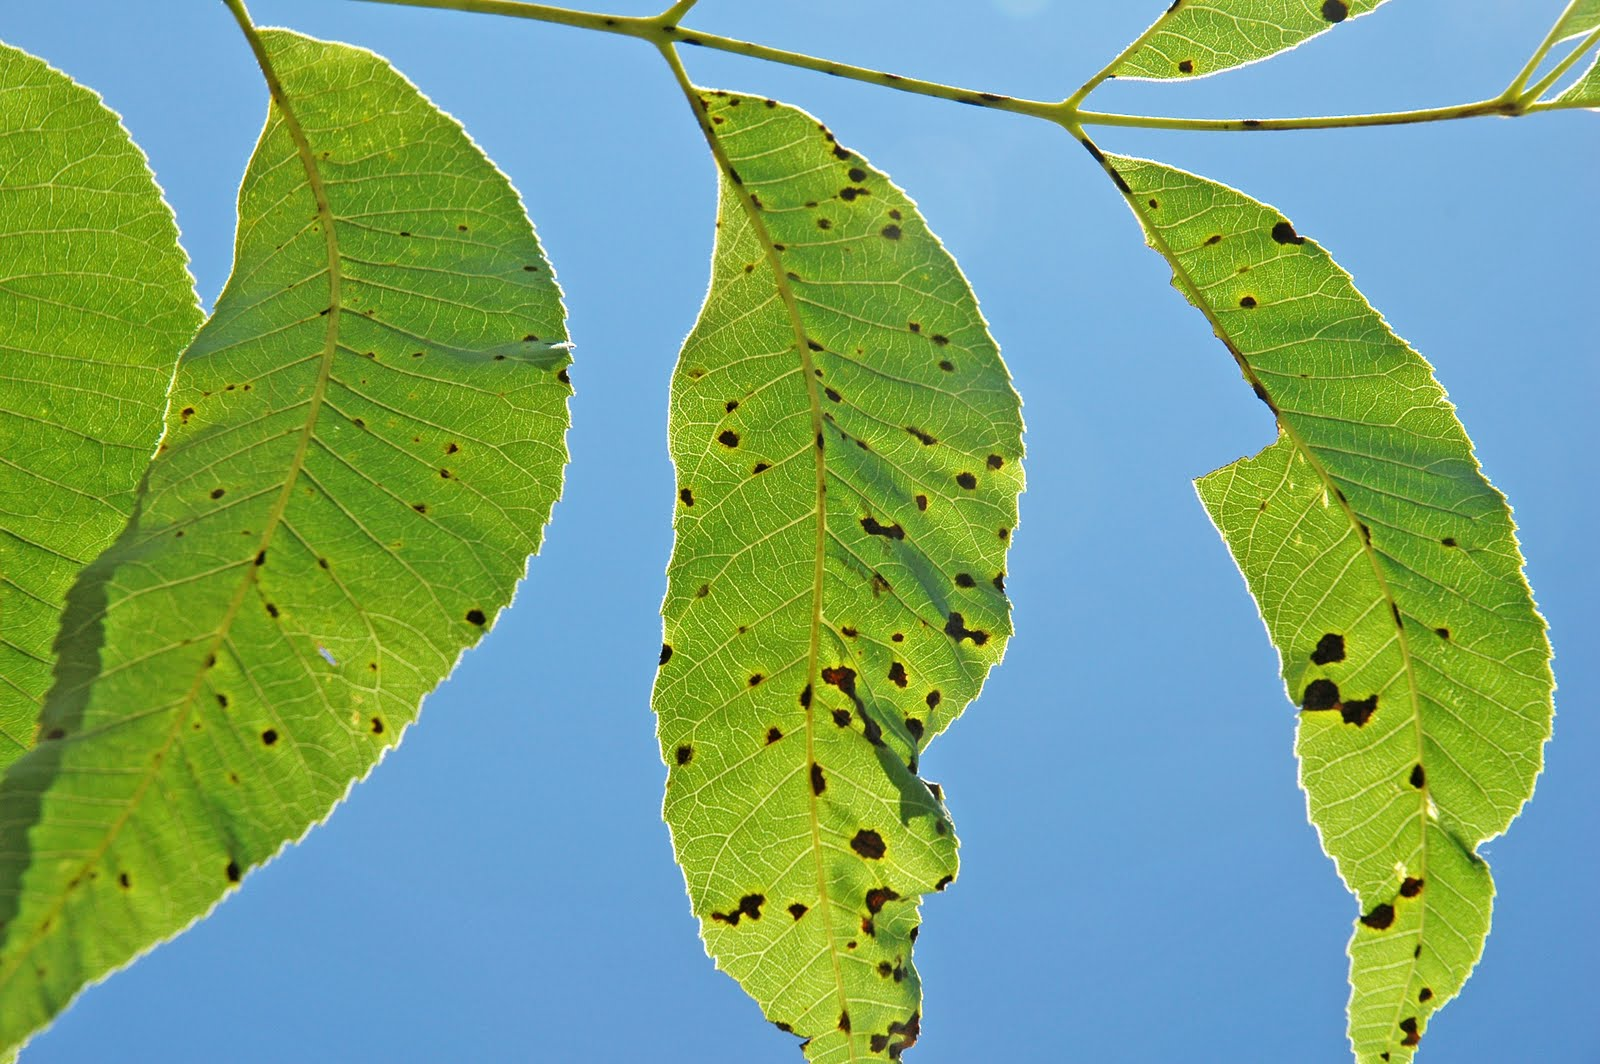 Tree leaves of kansas - Over The Past Several Years Pecan Scab Has Developed Into A Massive Problem For Northern Pecan Growers This Year In Se Kansas Weather Conditions In May